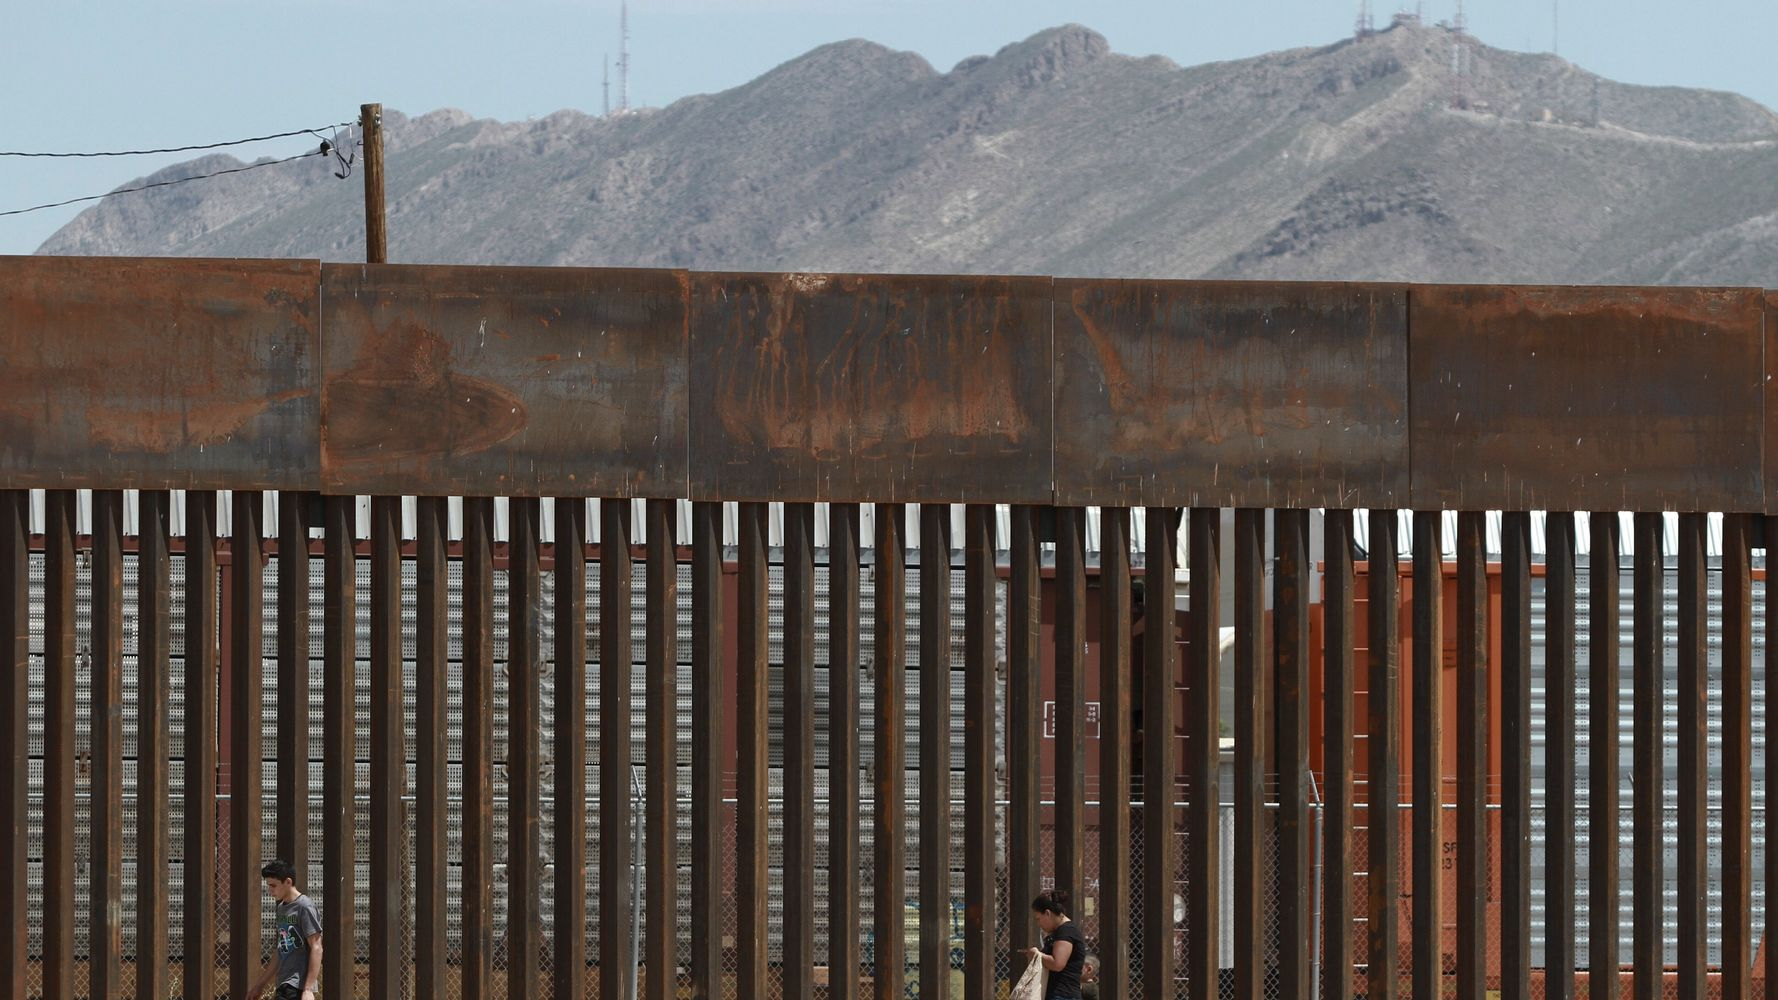 Pregnant 19-Year-Old Dies Trying To Climb U.S. Border Wall